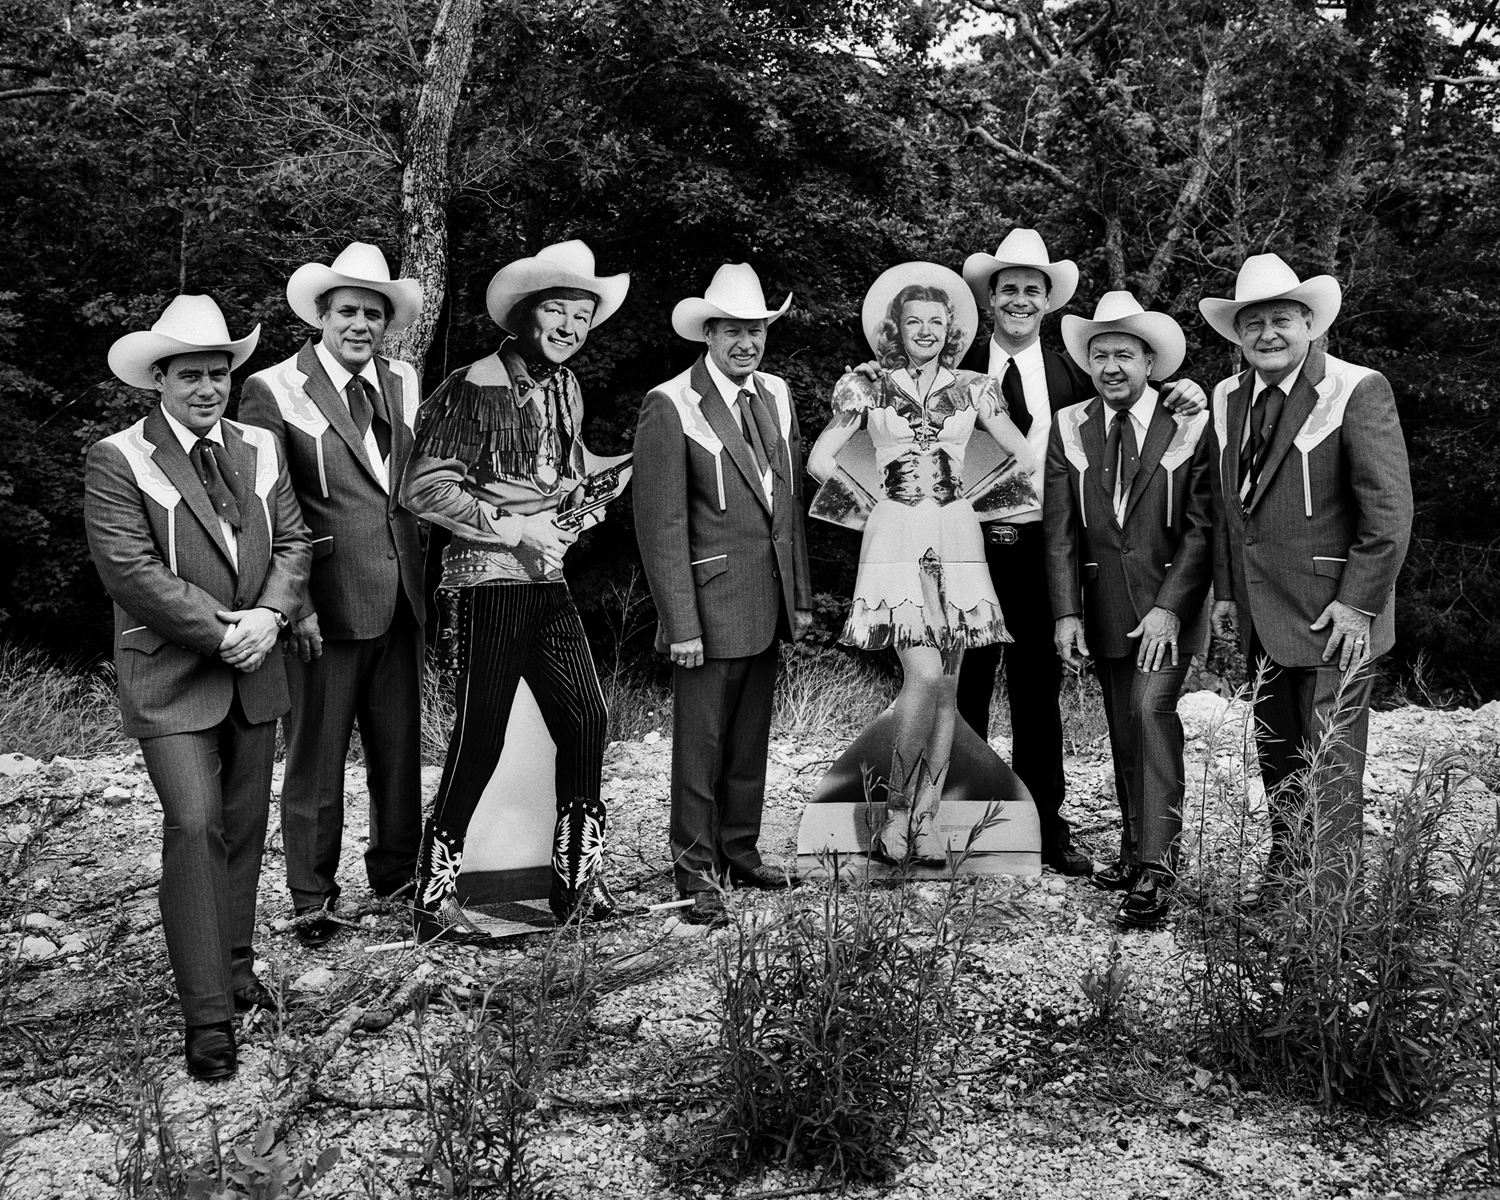 Sons of the Pioneers with Roy Rogers and Dale Evans, Branson, Mo., 1997